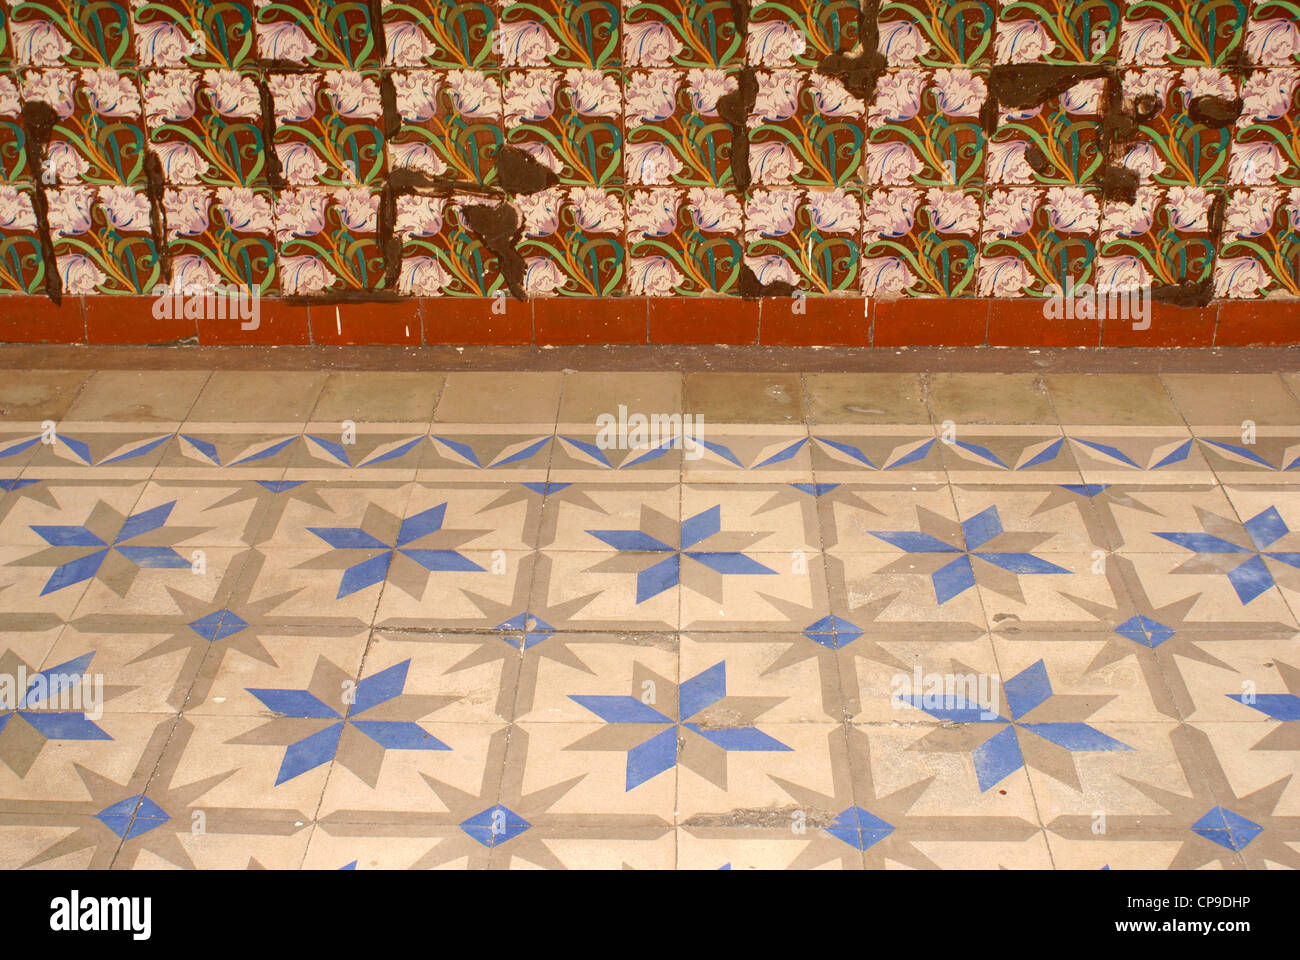 Floor and wall tiles in the Spanish colonial river town of Tlacotalpan, Veracruz, Mexico. - Stock Image